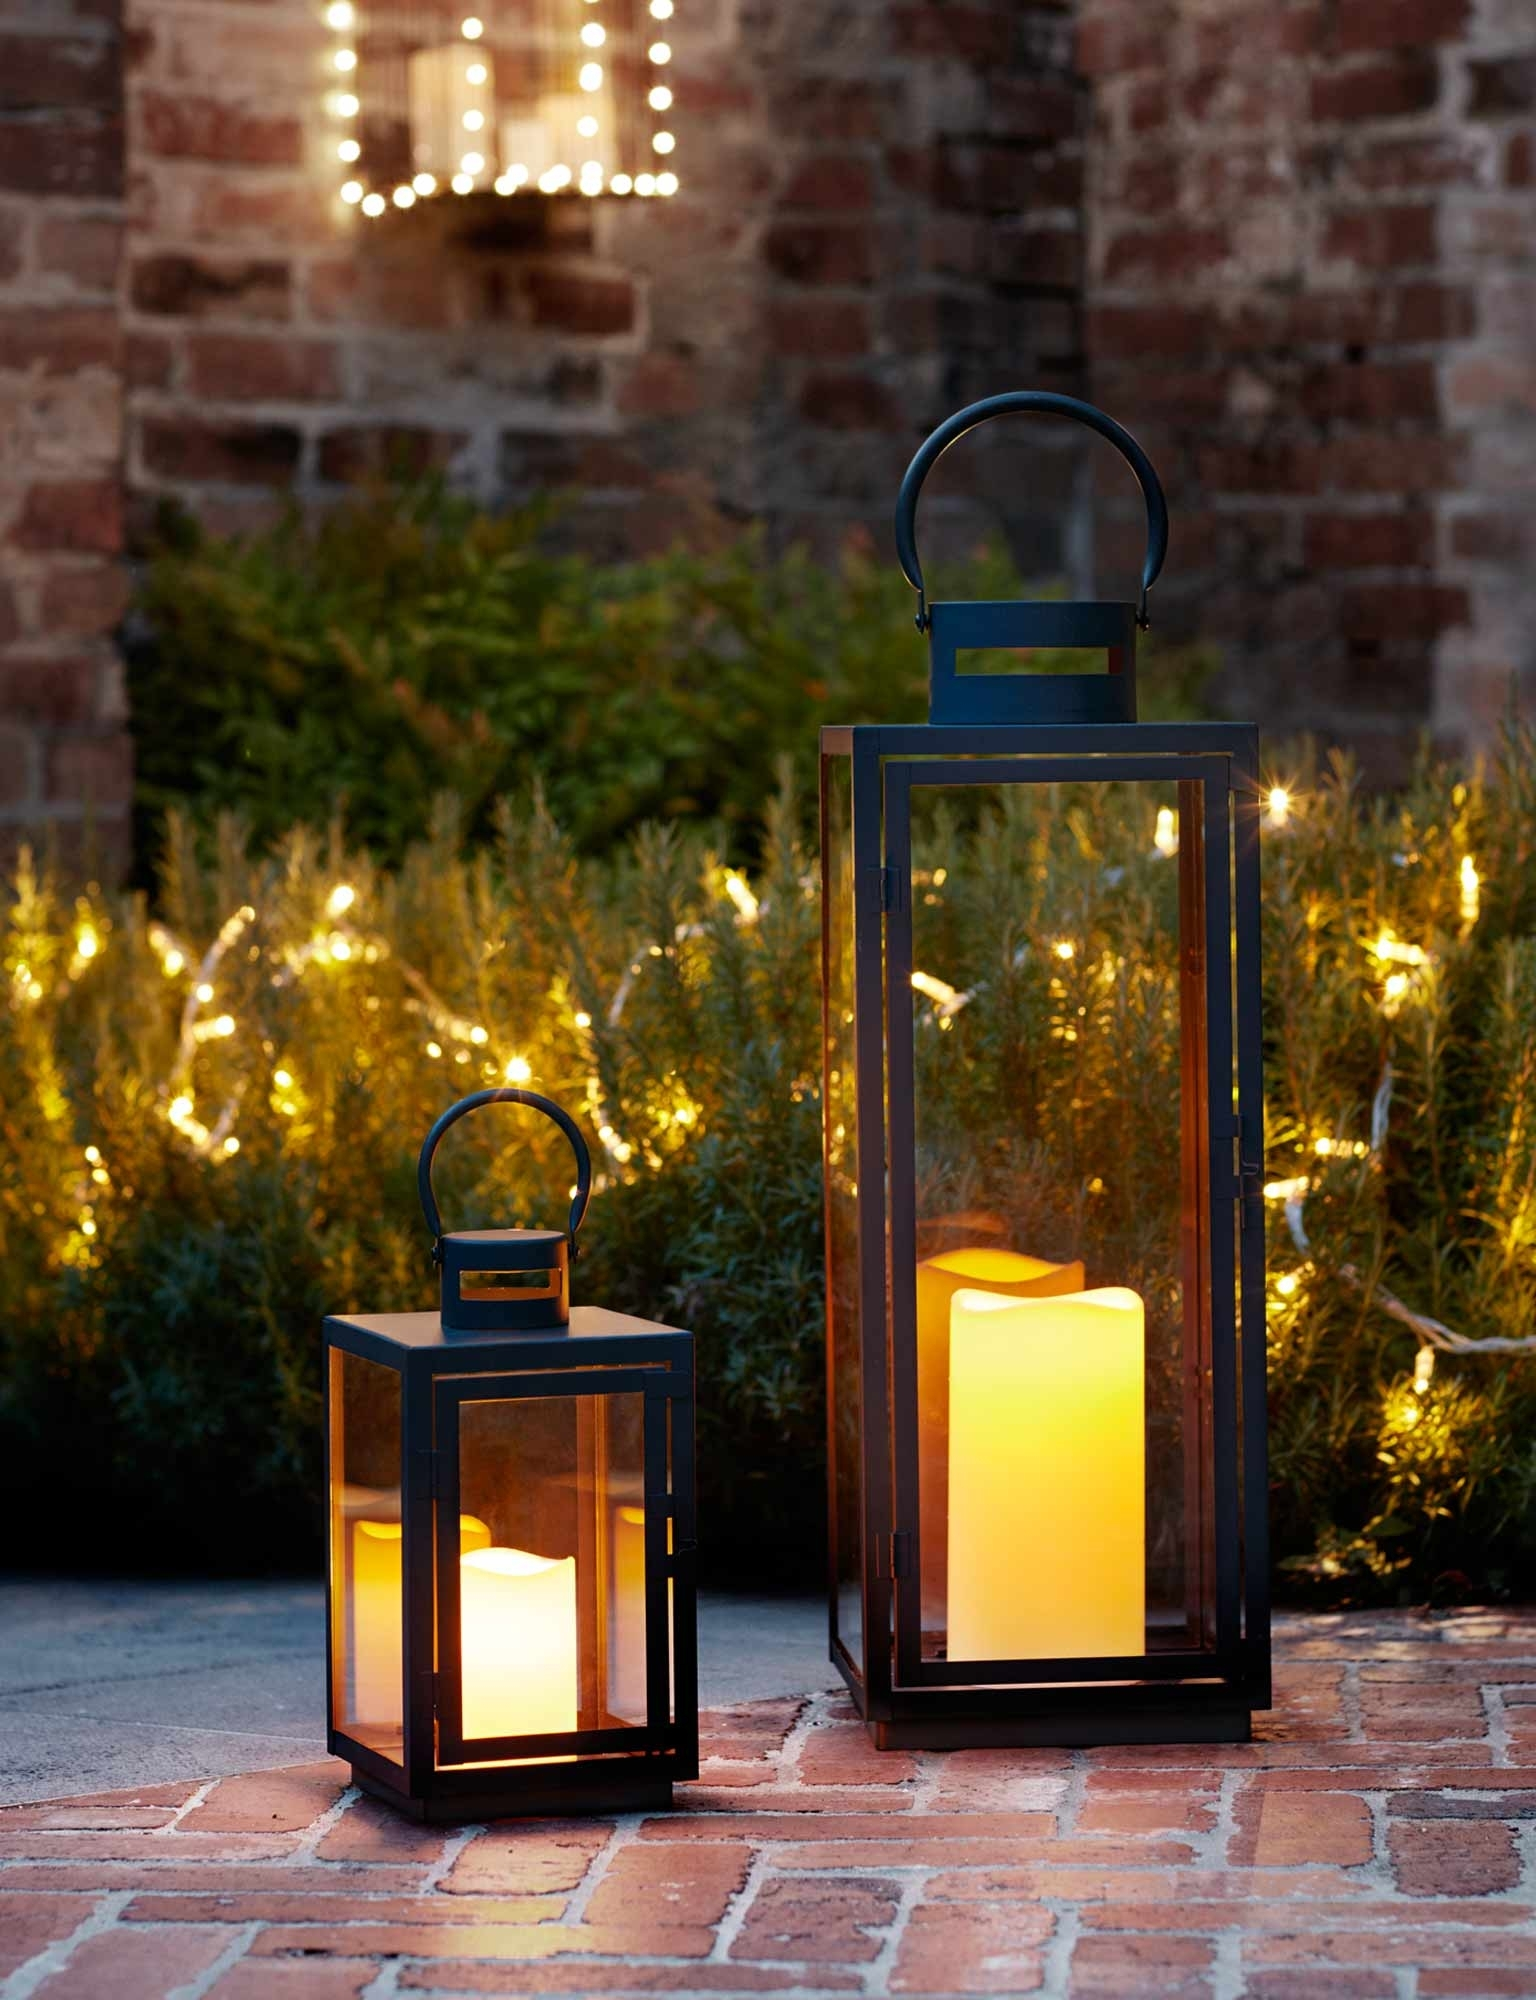 Garden Lighting Ideas | Inspiration | Lights4Fun.co.uk intended for Outdoor Mains Lanterns (Image 5 of 20)